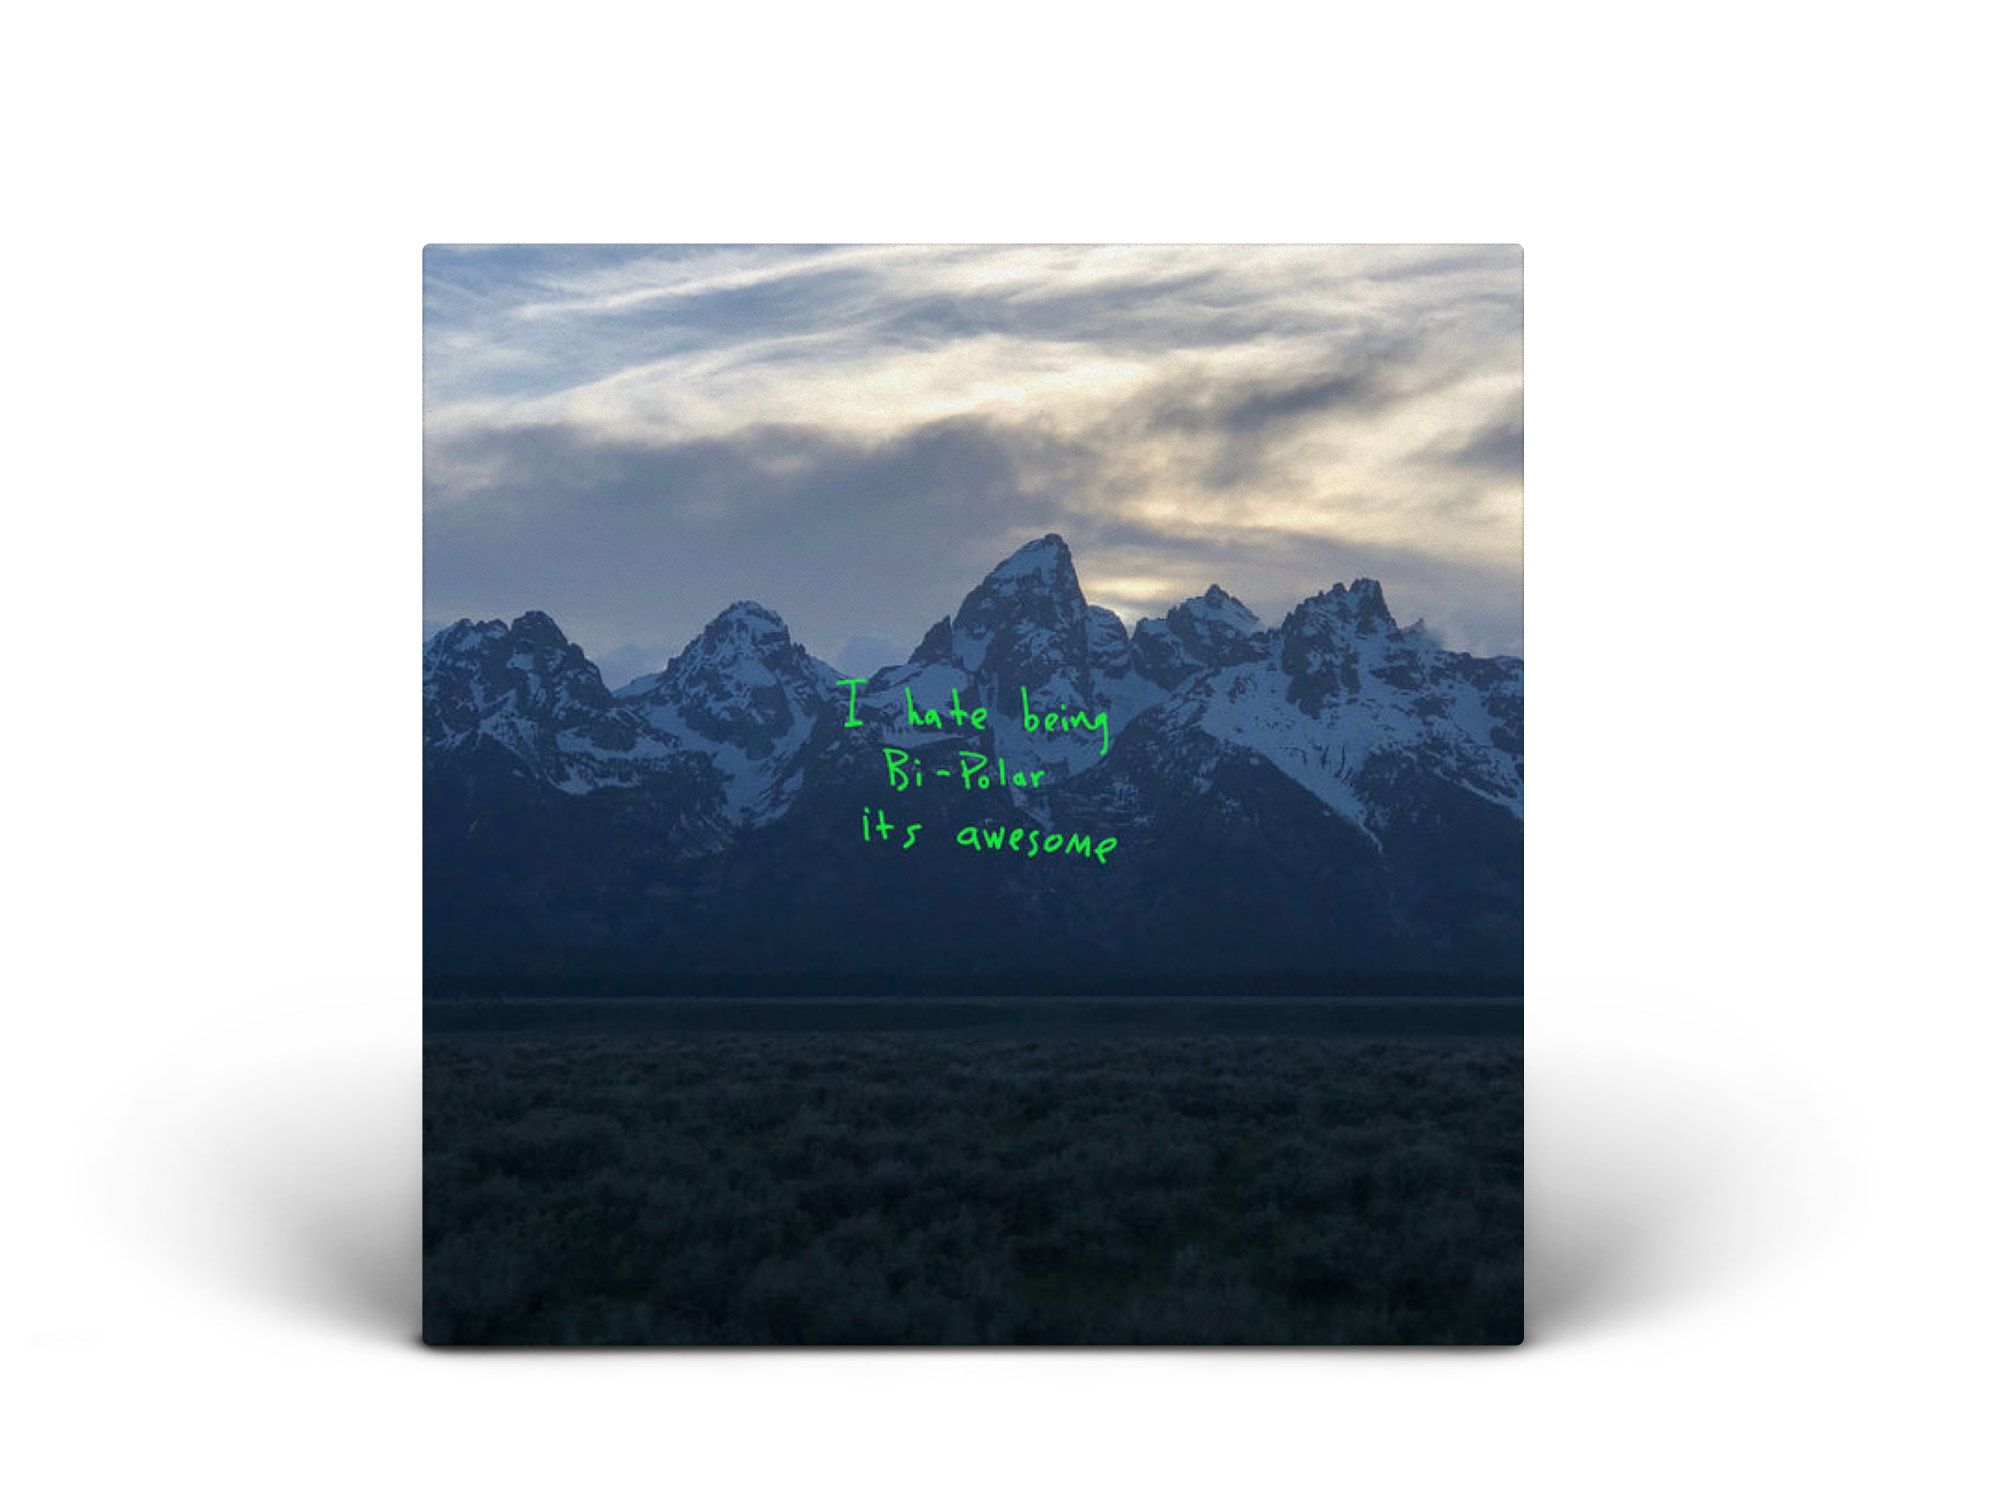 Ghost Town / Kanye West - Best famous last words.